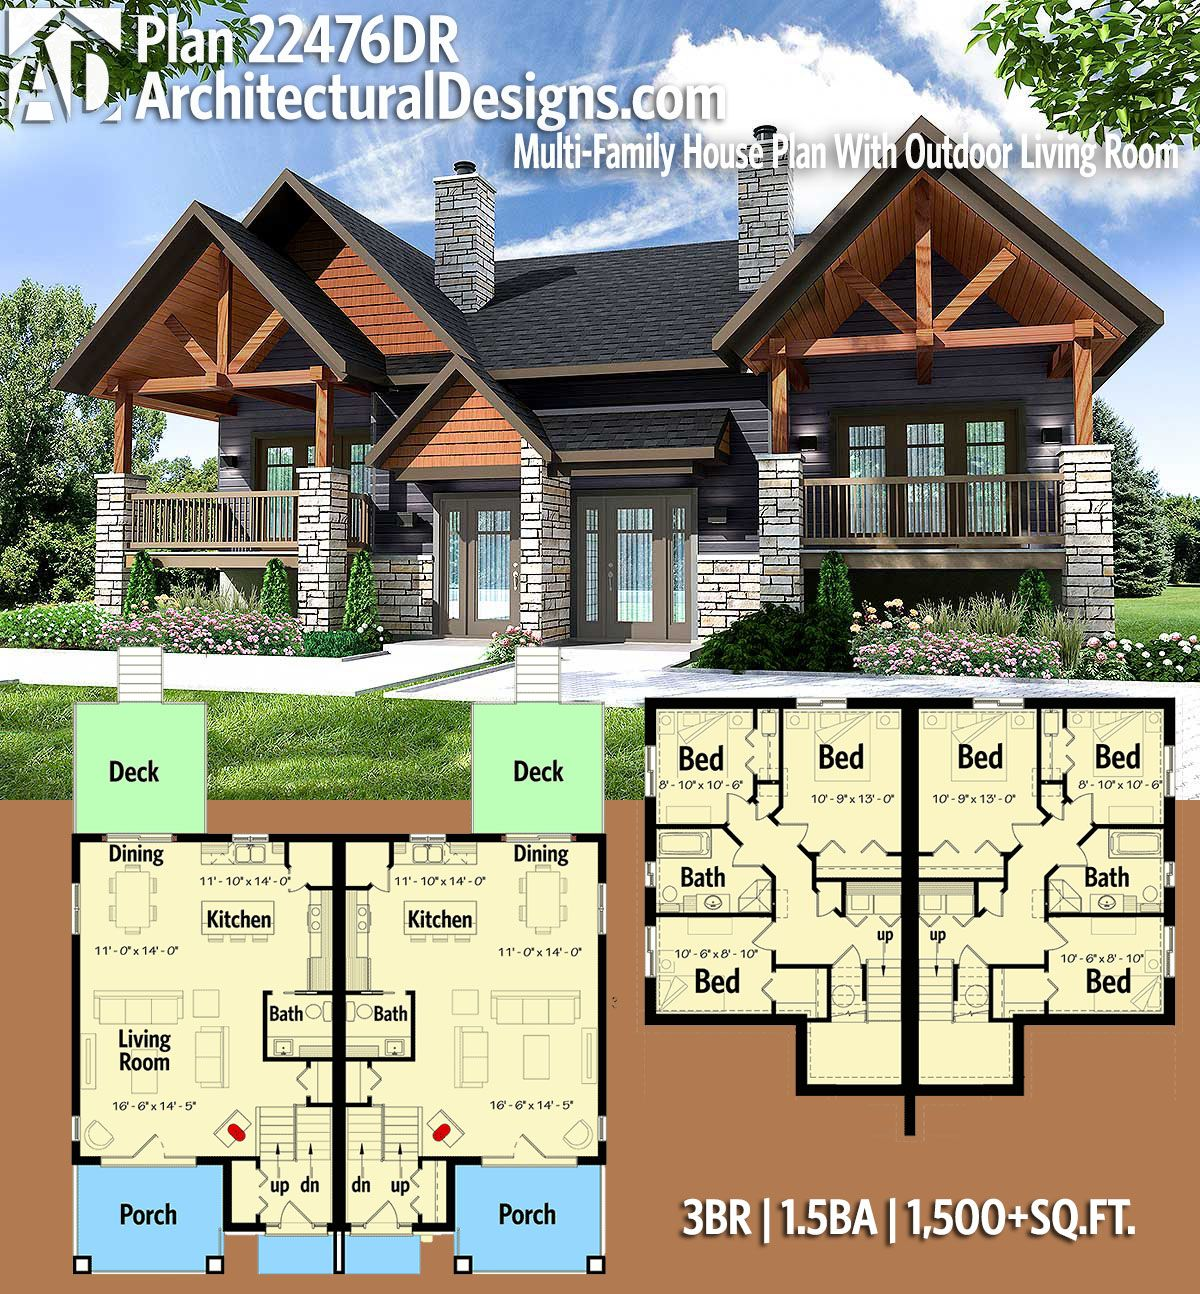 Plan 22476dr Multi Family House Plan With Outdoor Living Room Family House Plans Craftsman House Plans House Blueprints